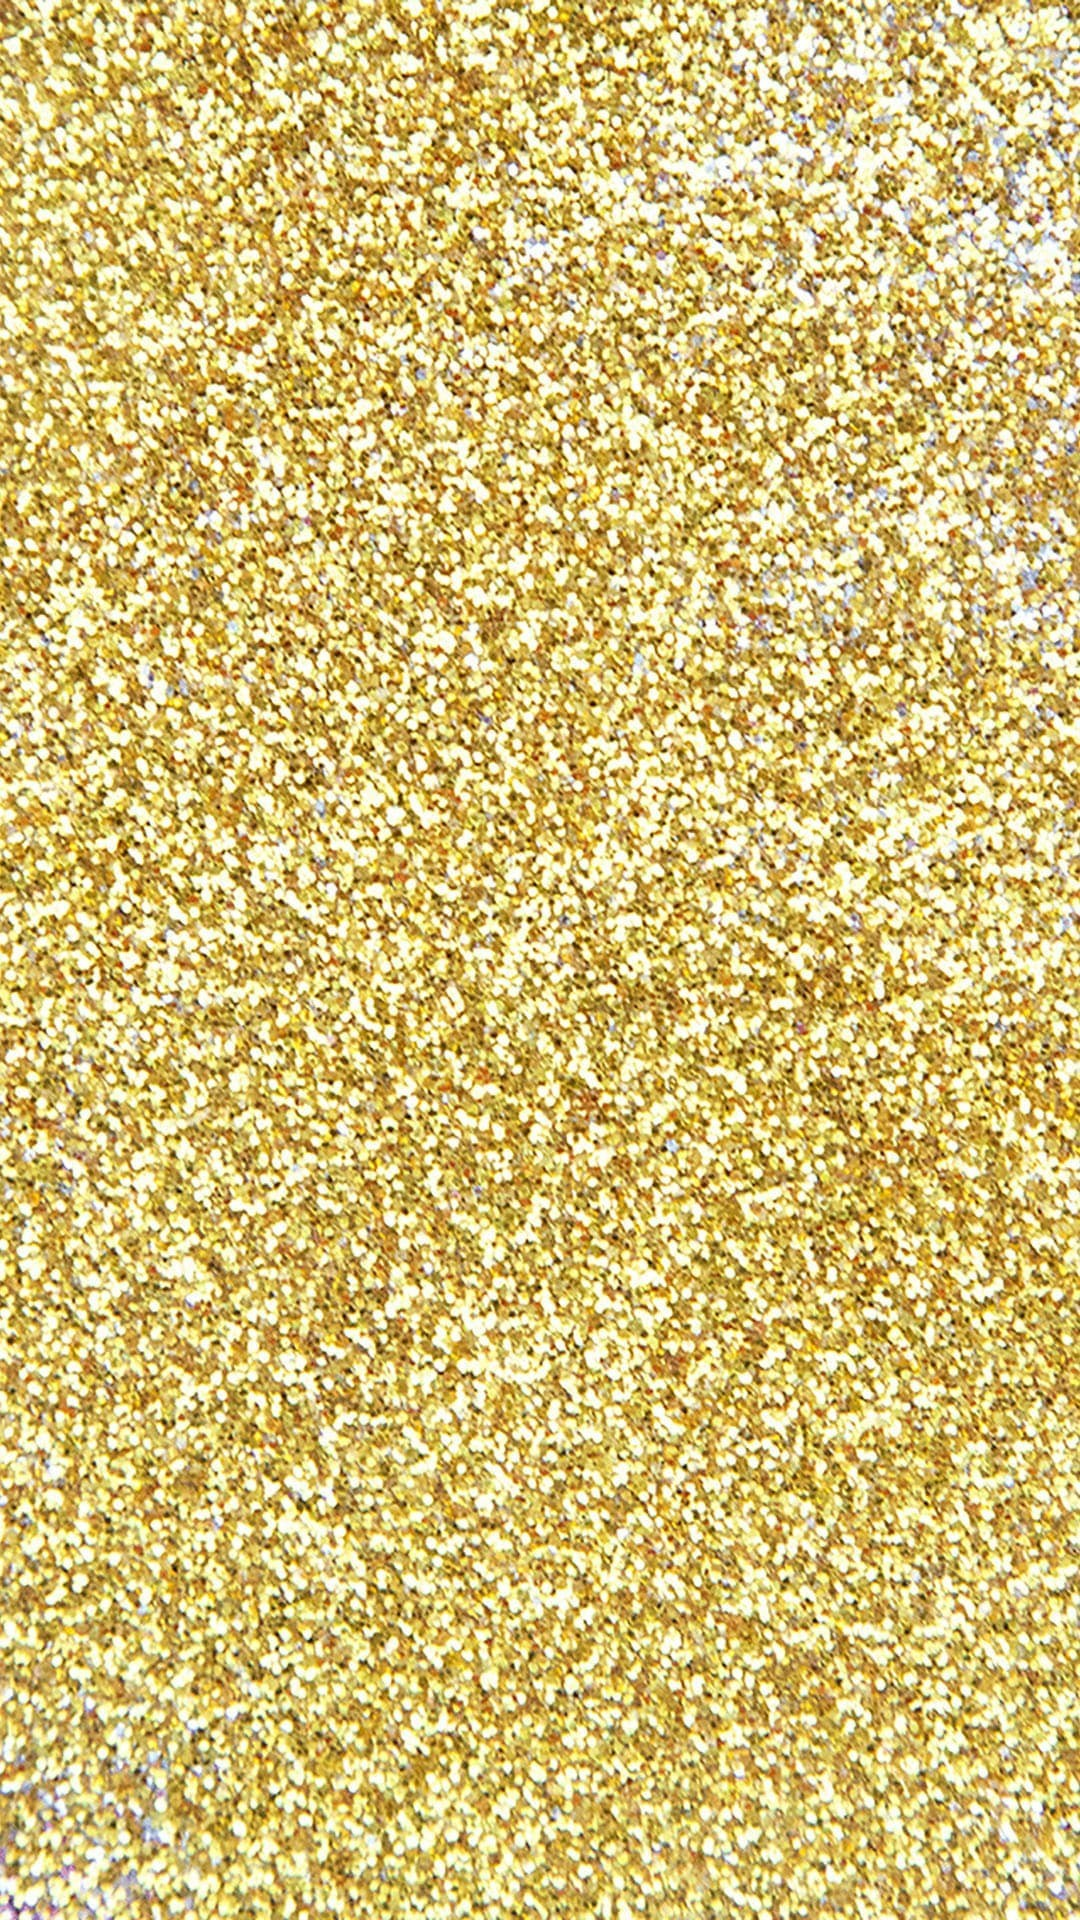 gold glitter iphone wallpaper 23 images